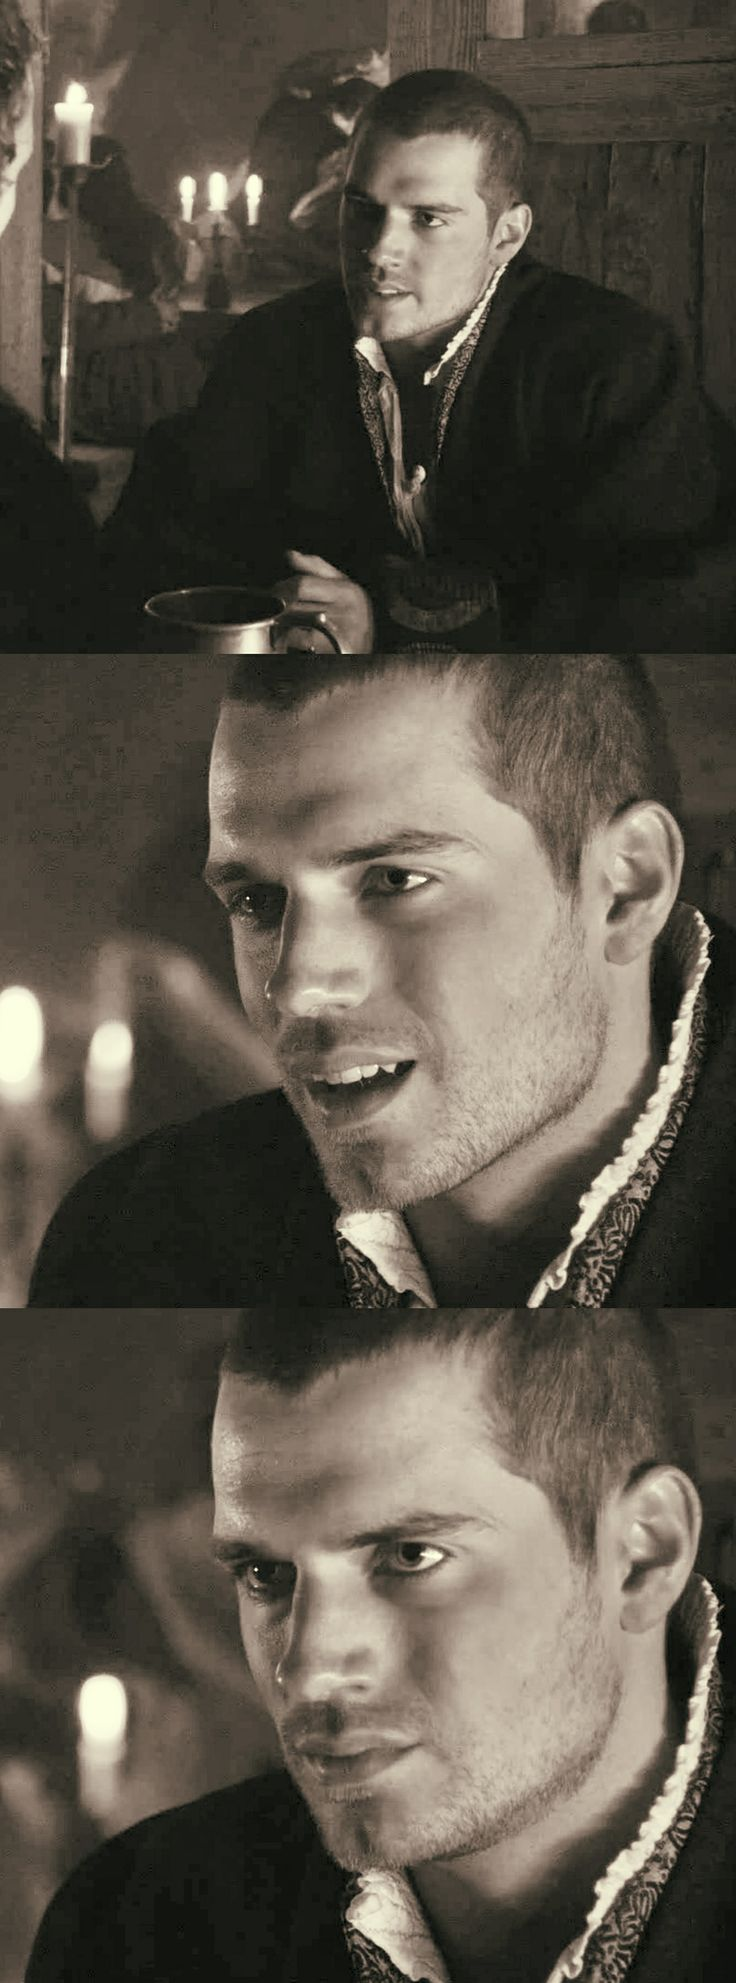 #HenryCavill Henry Cavill as Charles Brandon in The Tudors on HBO.